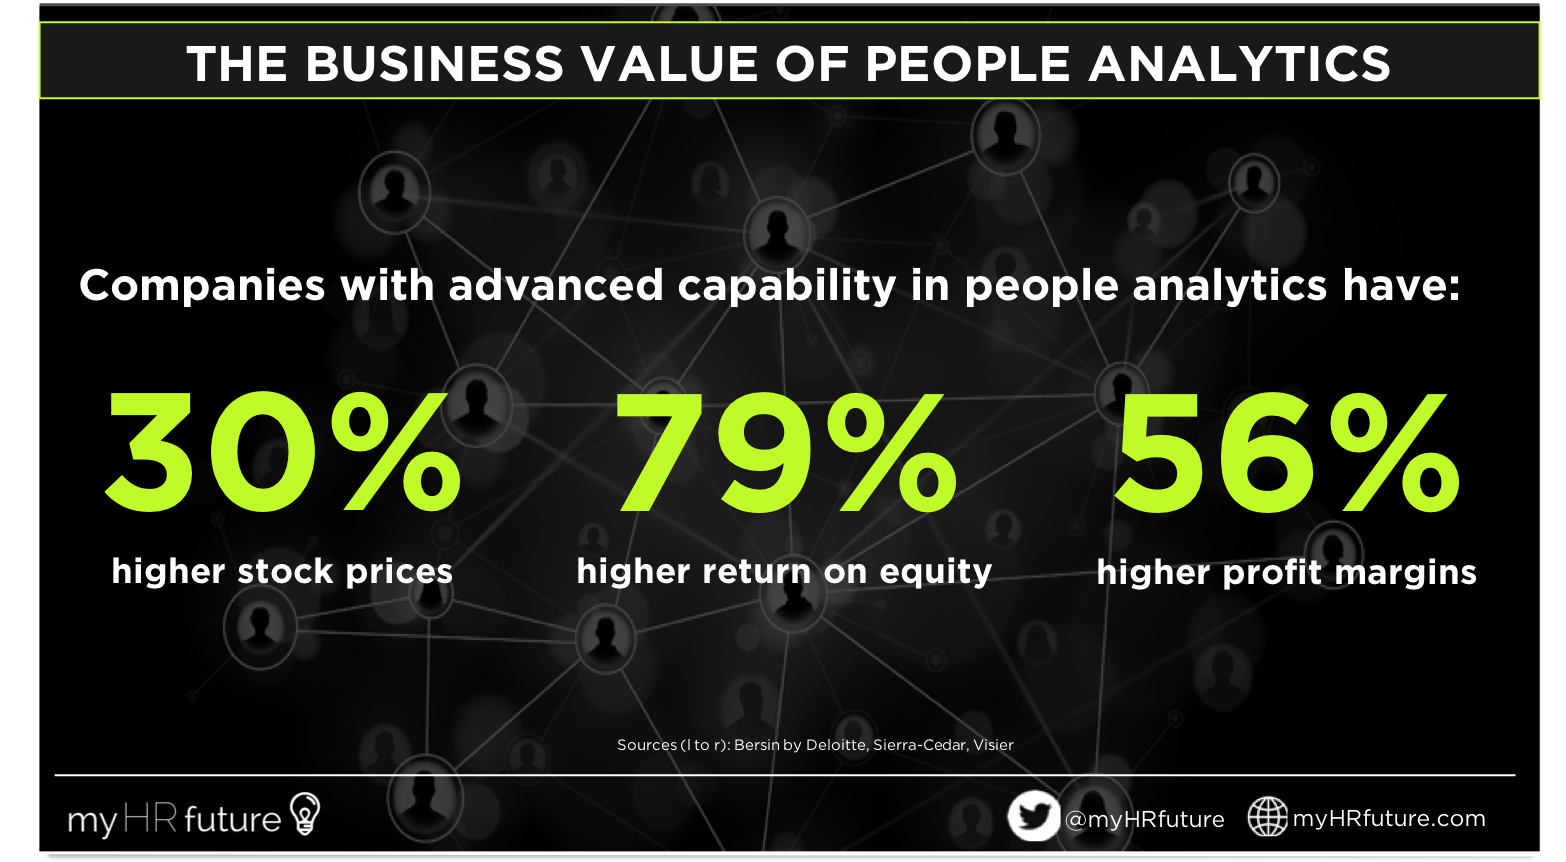 FIG 1:    The business value of people analytics (Source: myHRfuture, Bersin by Deloitte, Sierra-Cedar and Visier)